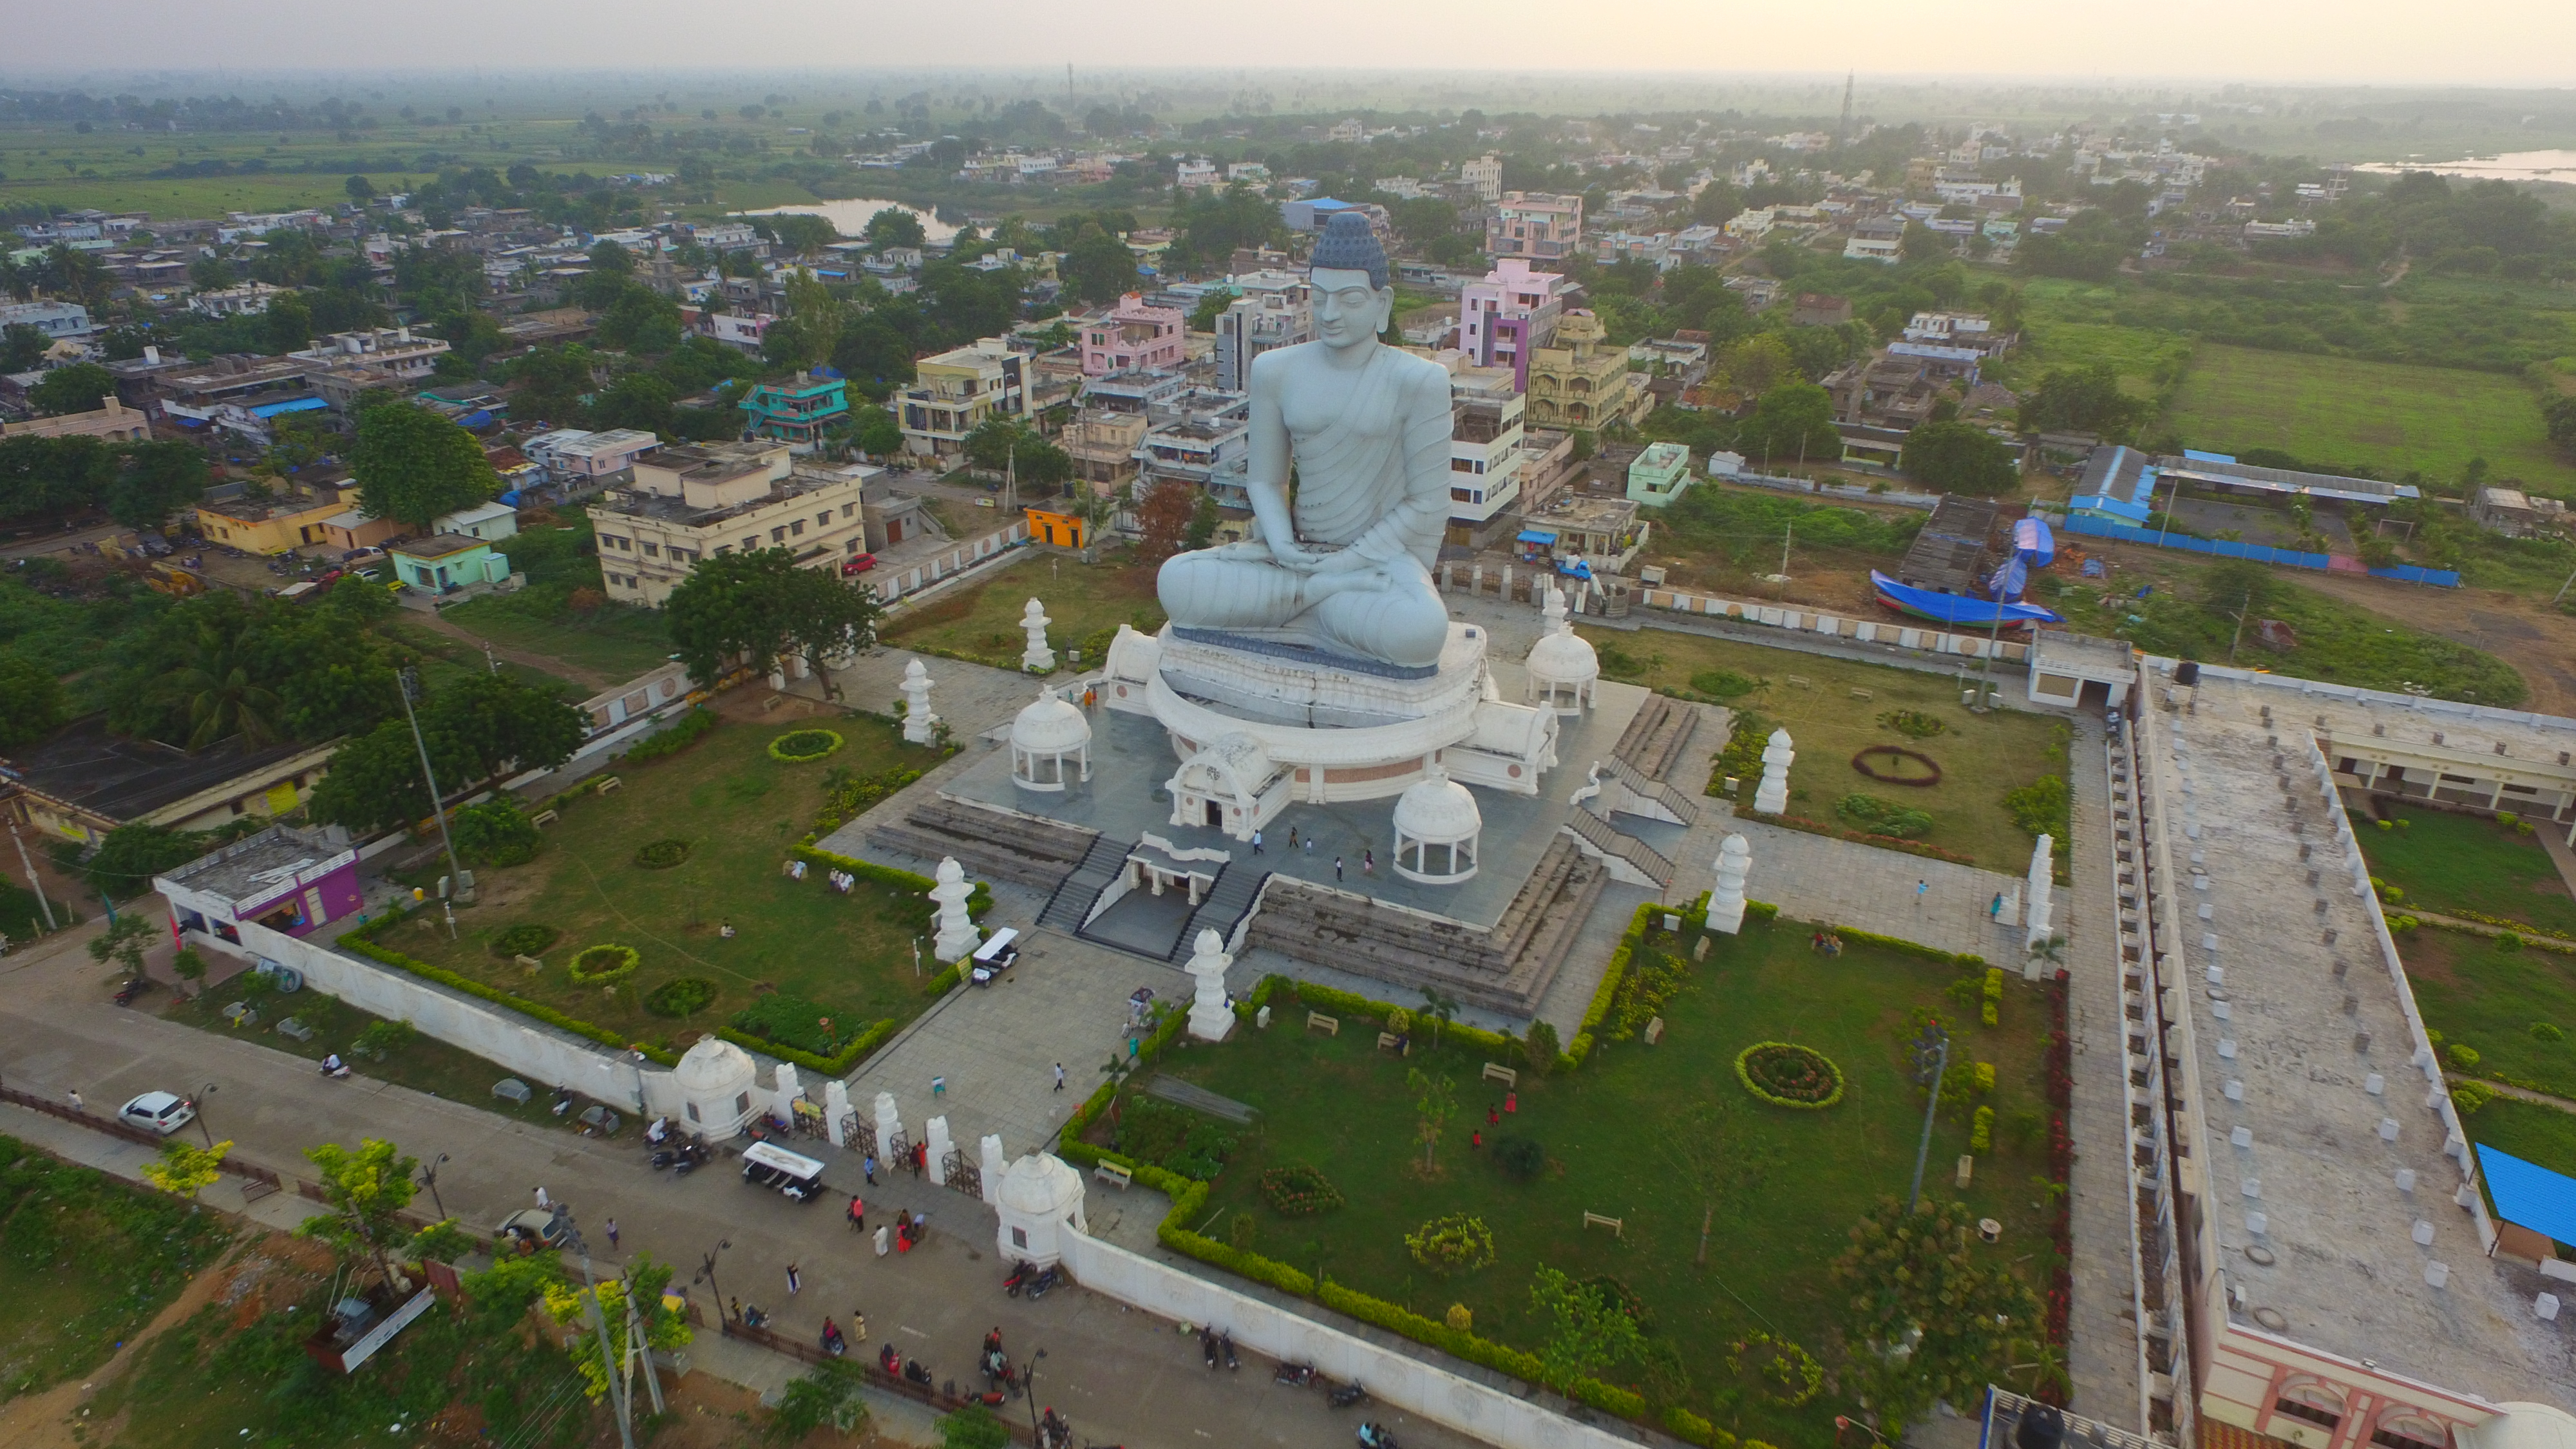 The original town of Amaravati was a pilgrim centre on the southern bank of the Krishna river, and the Satavahana capital in ancient times